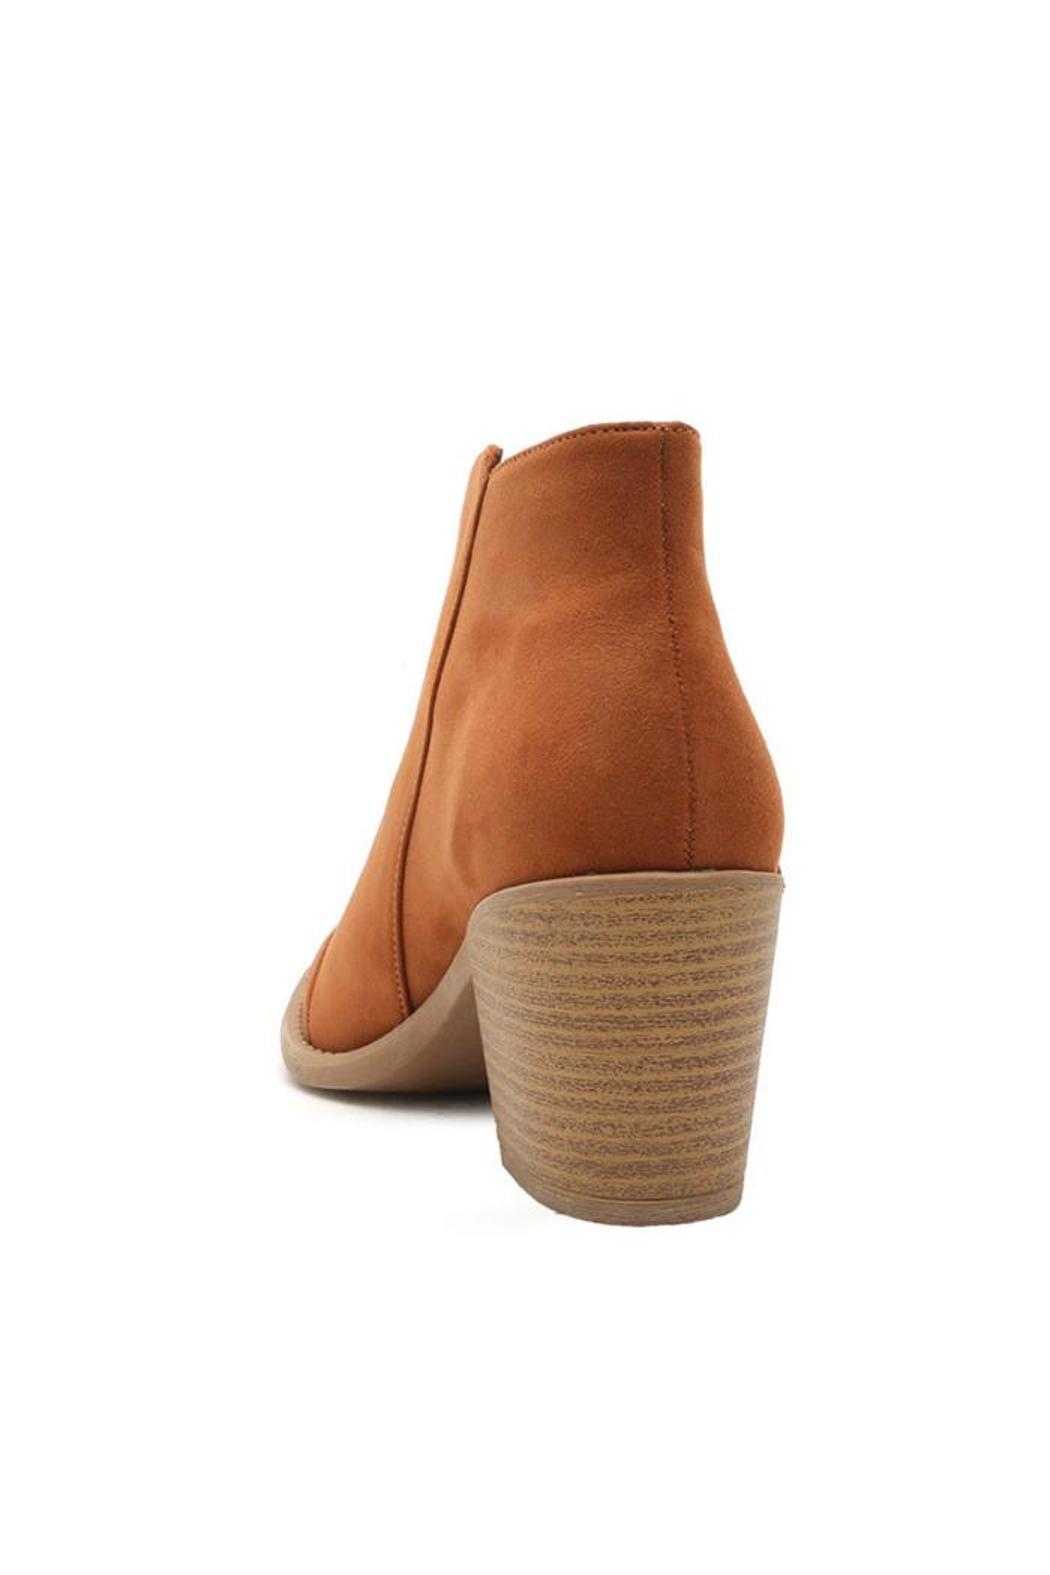 Qupid Cognac Ankle Booties - Front Full Image